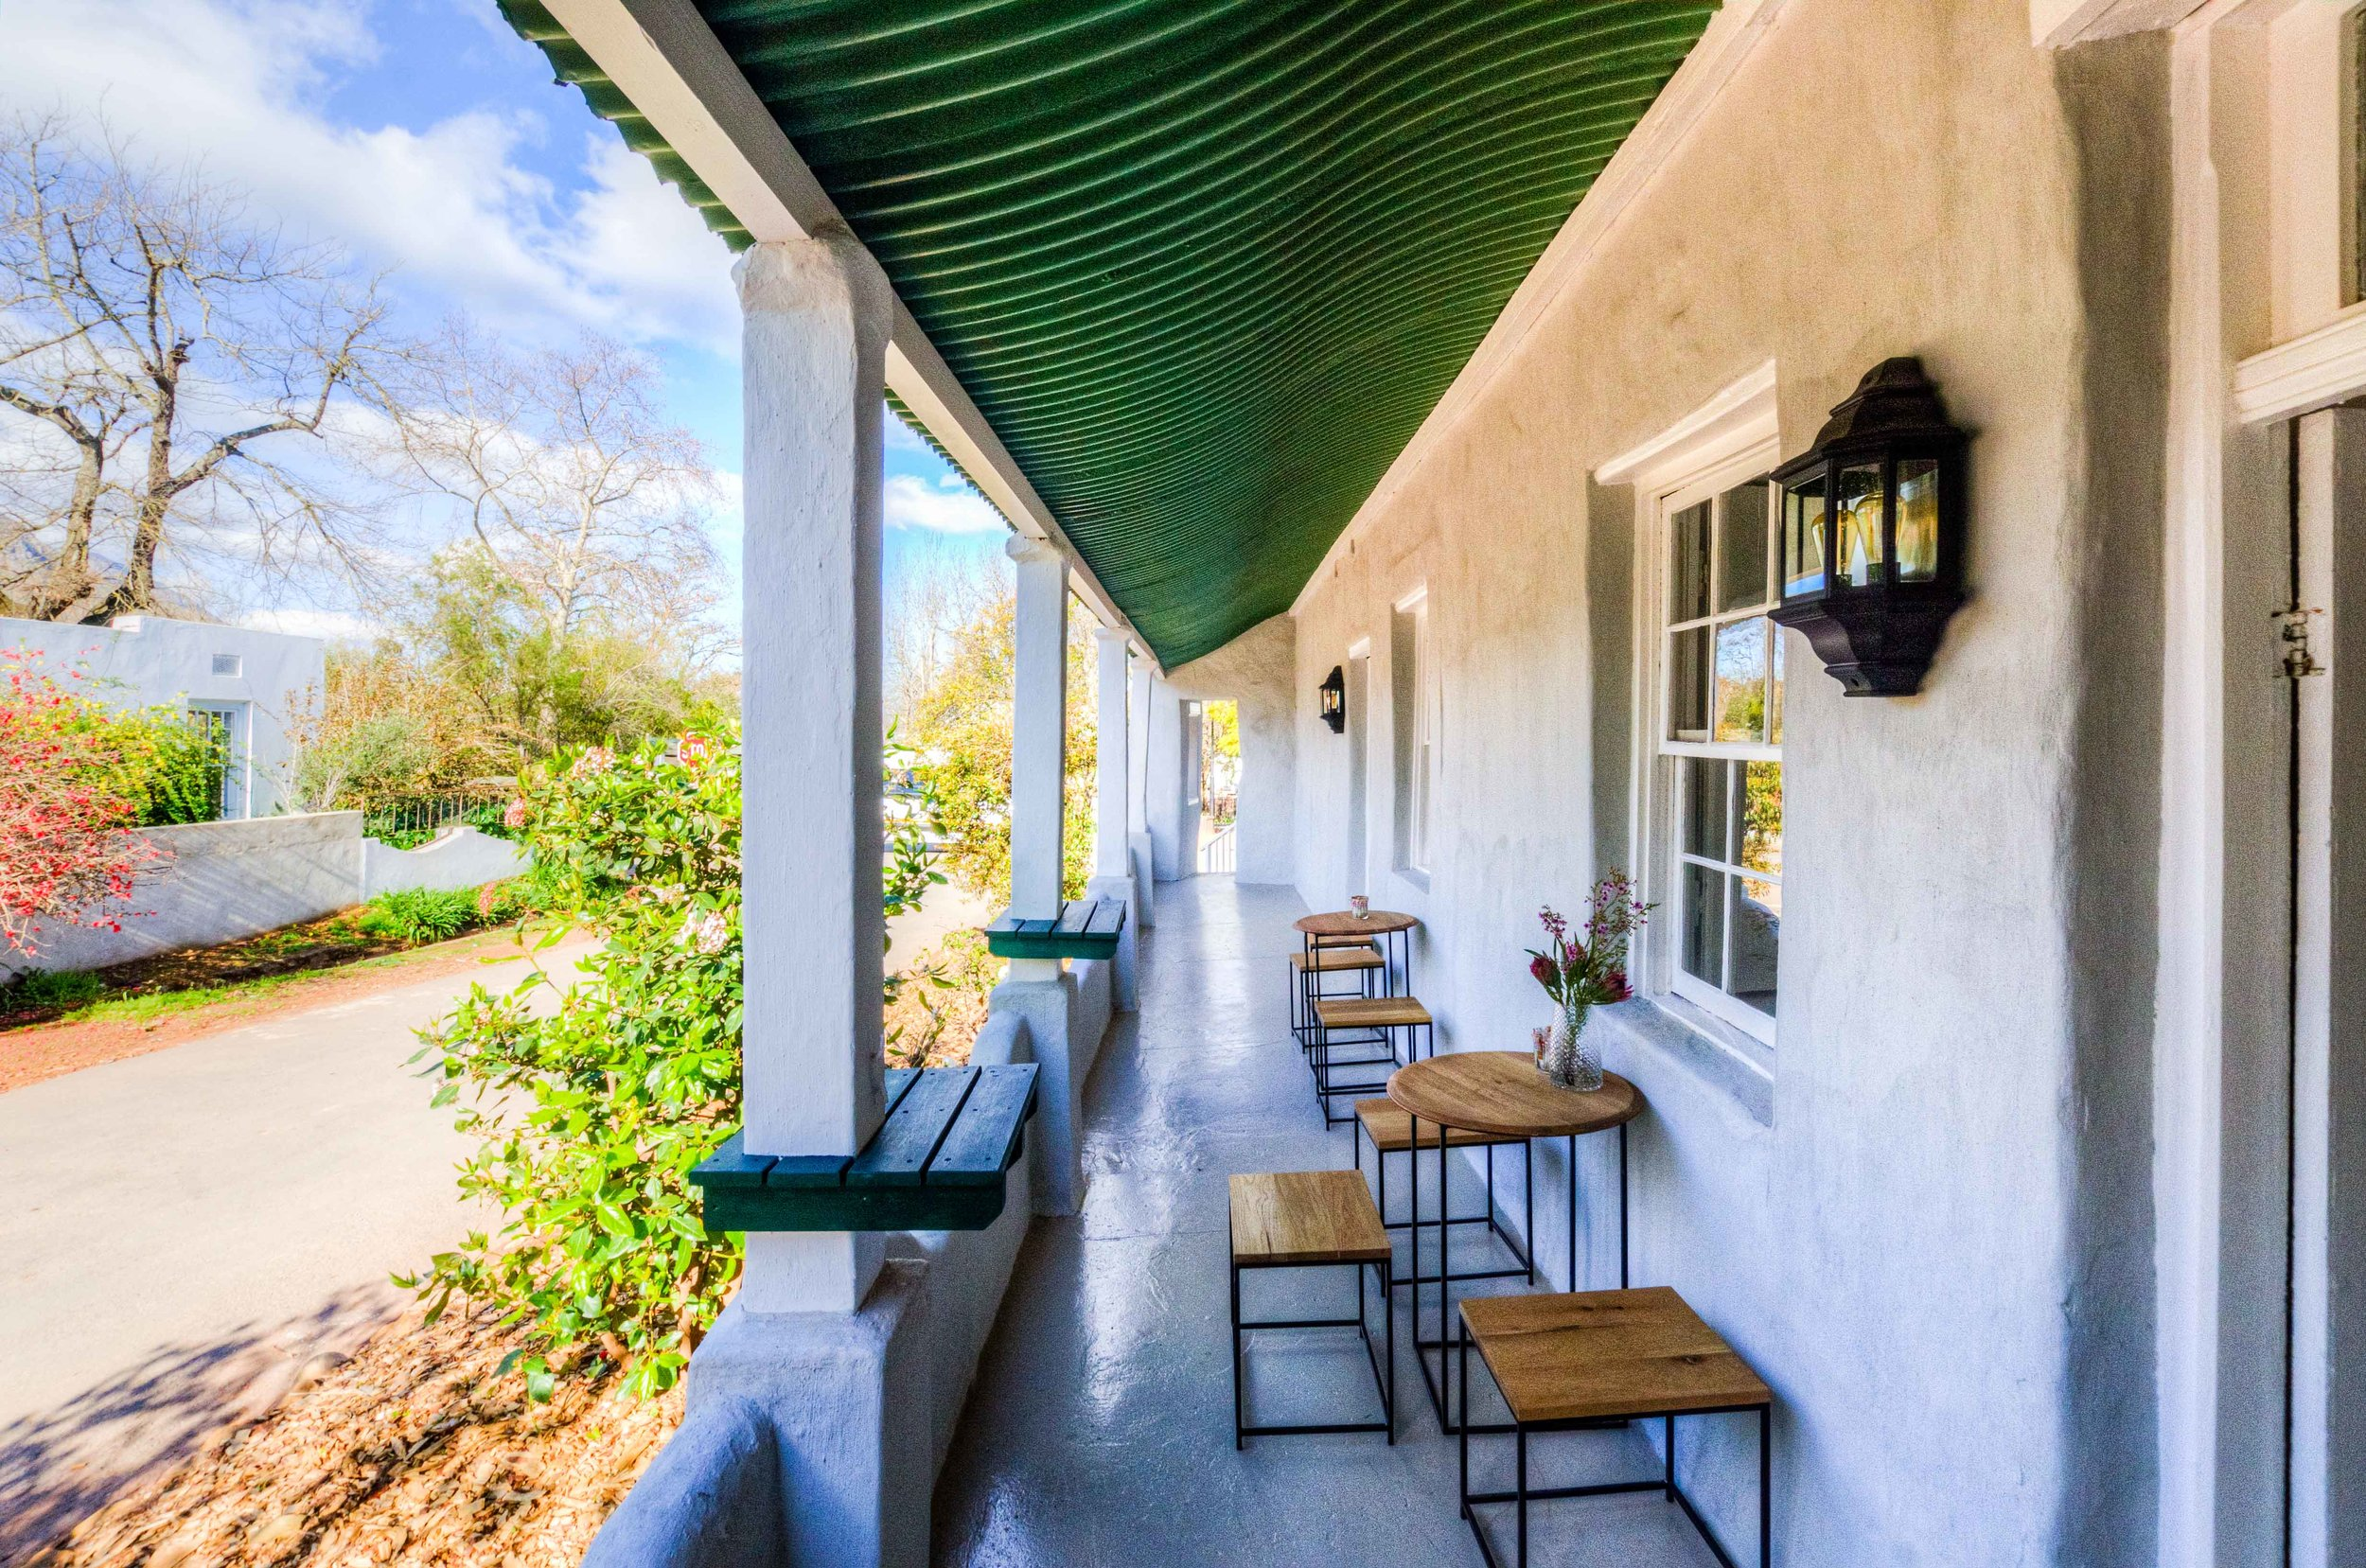 Low Resolution - Post House Greyton - Overberg Real Estate Photographer - Lourens Rossouw Photoghraphy - Riaan Lourens (310).jpg